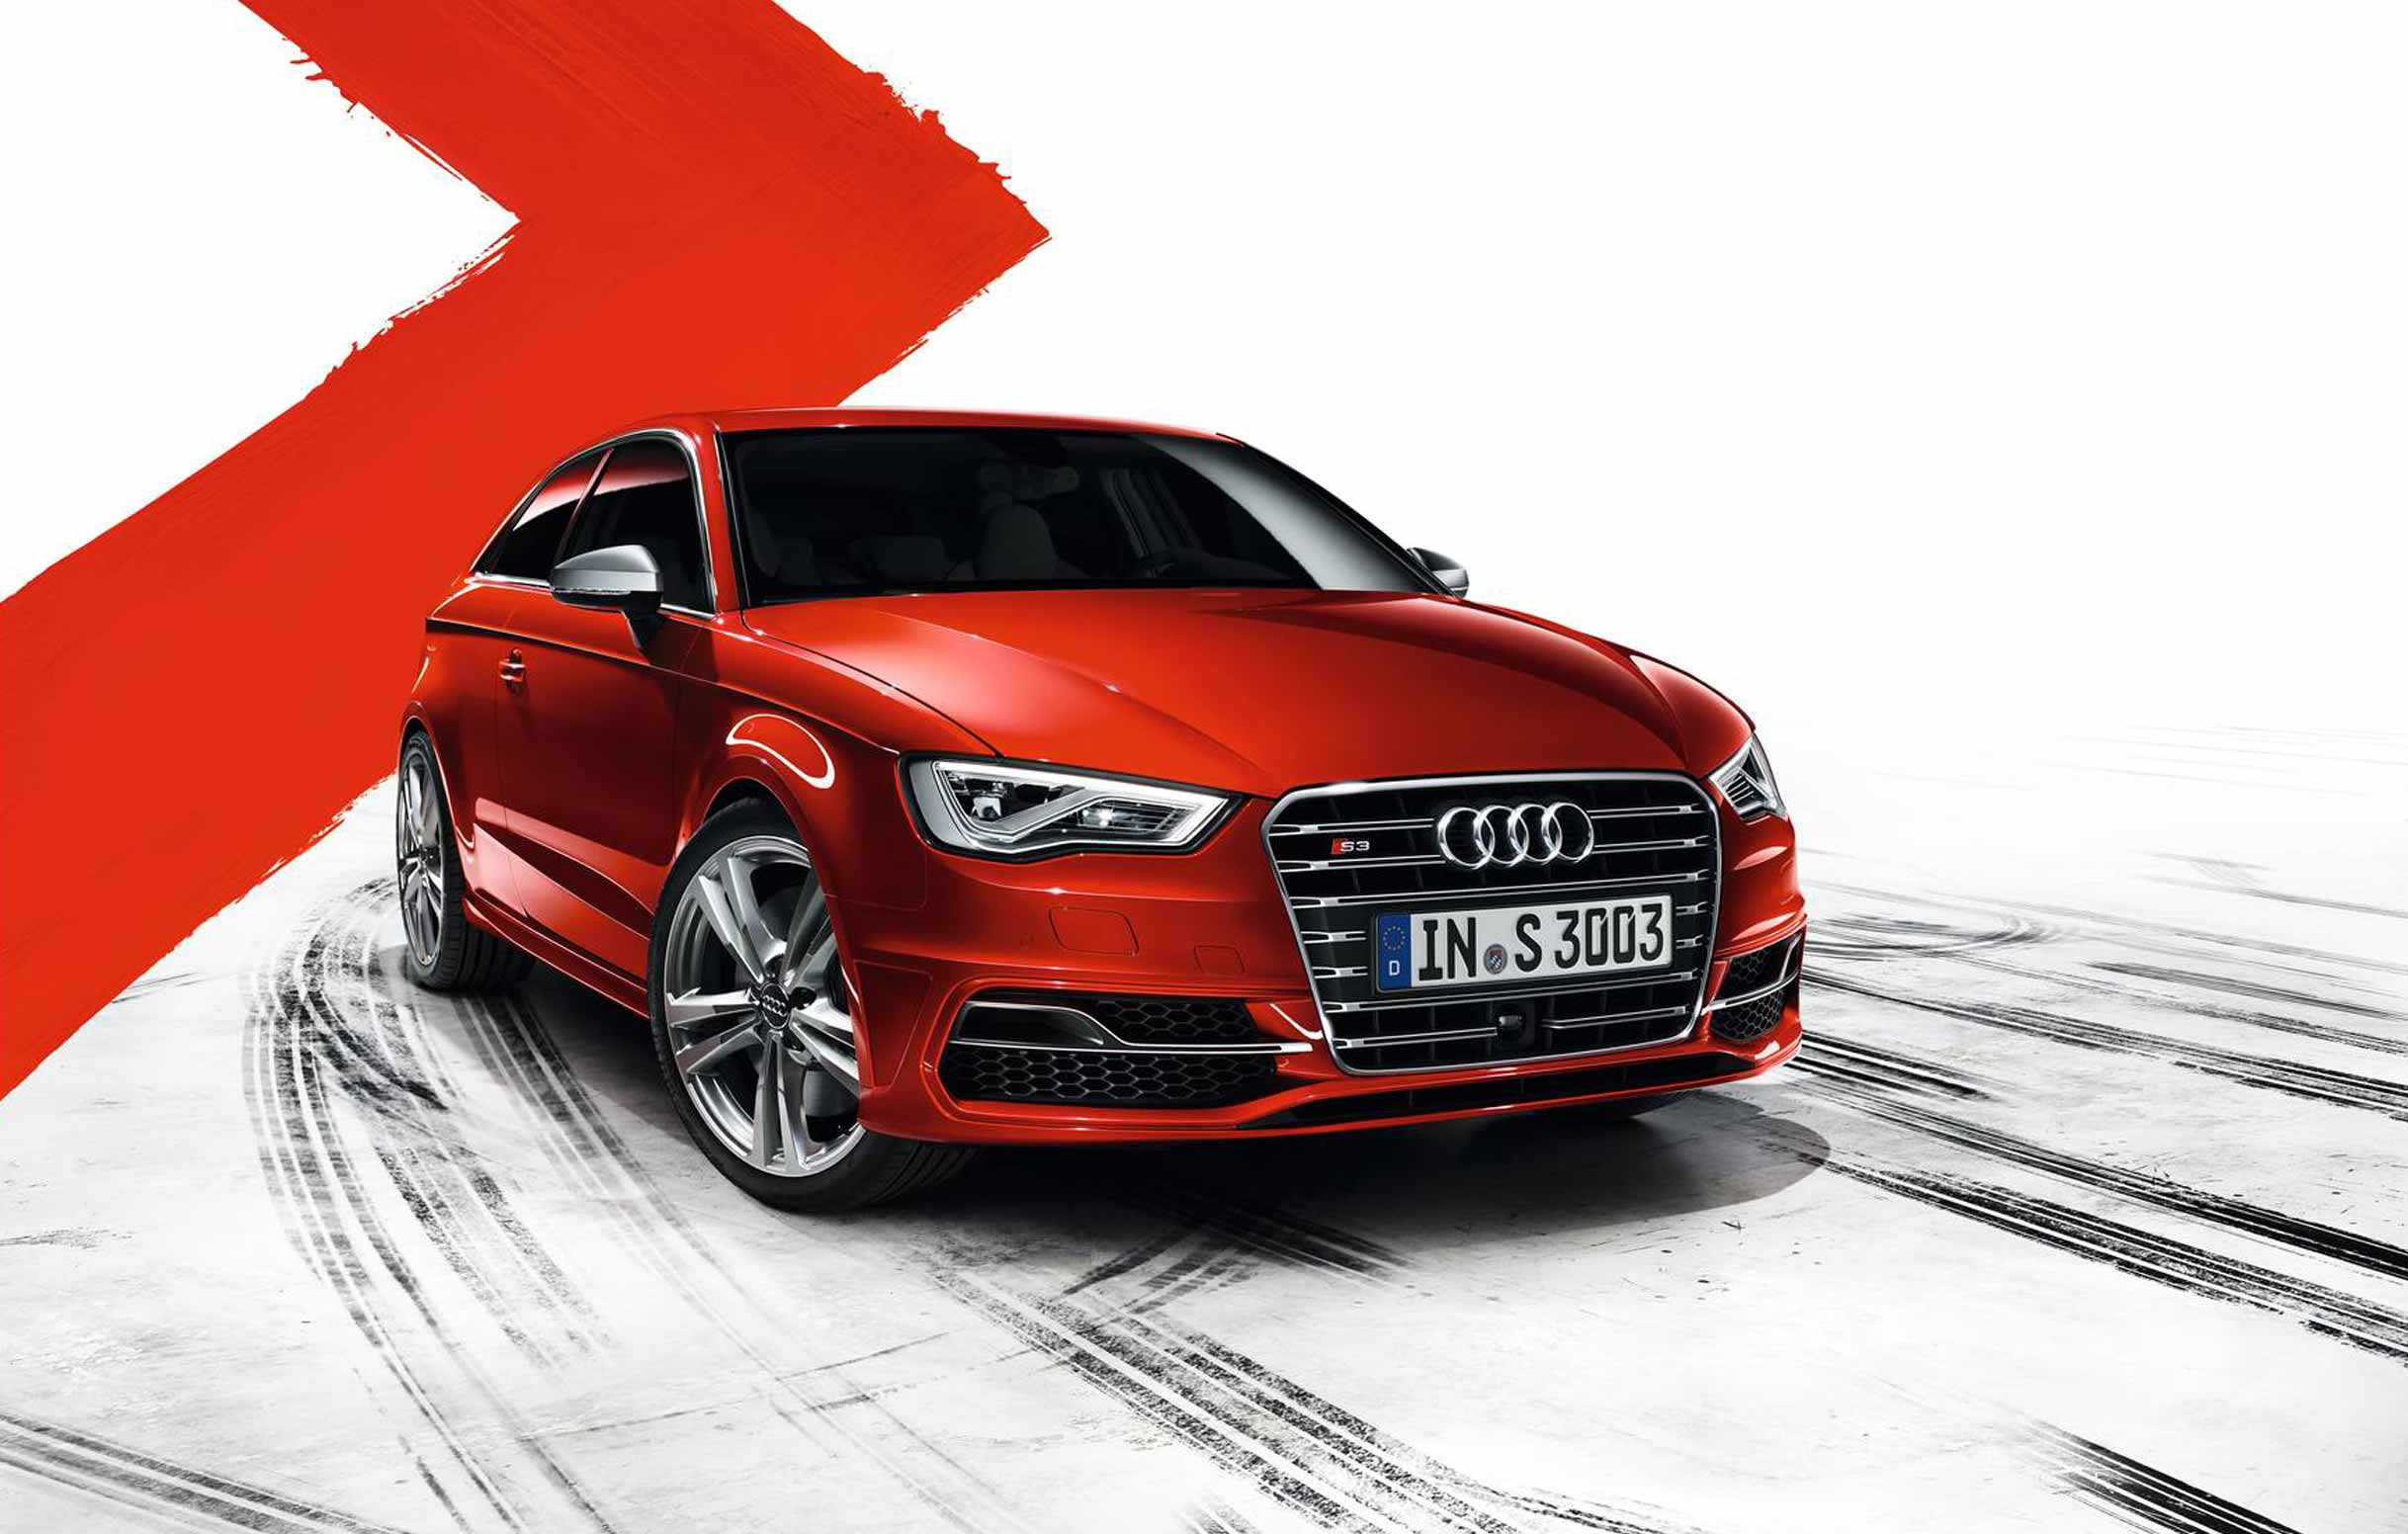 Audi A3 hatchback coming in 2015